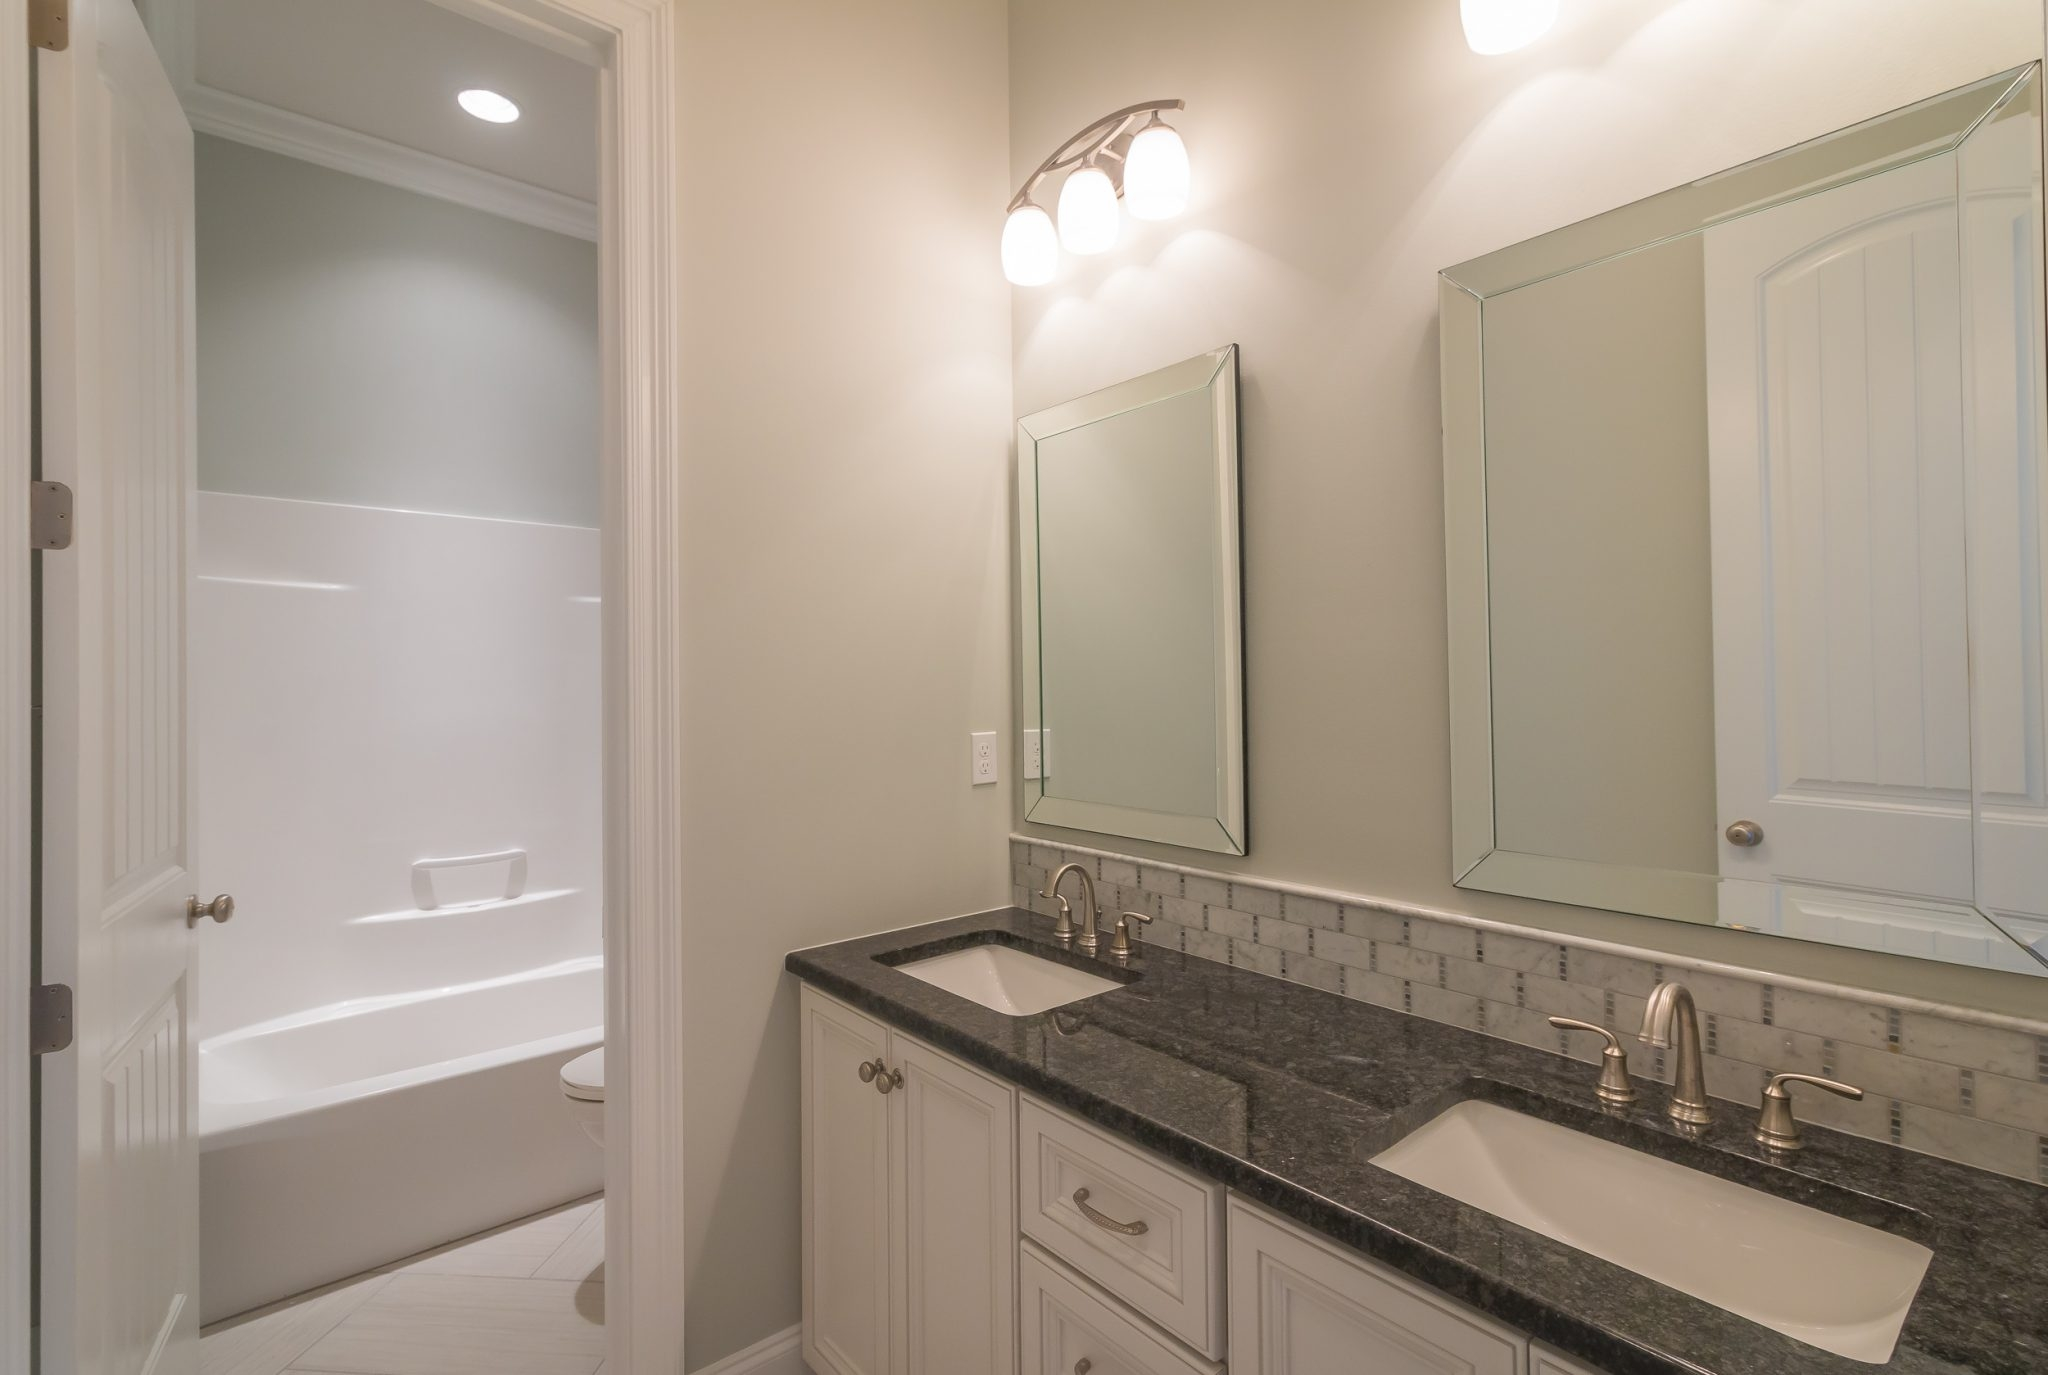 Bathroom Remodel Lafayette Lacustom Bathrooms Remodeling Contractor La Home